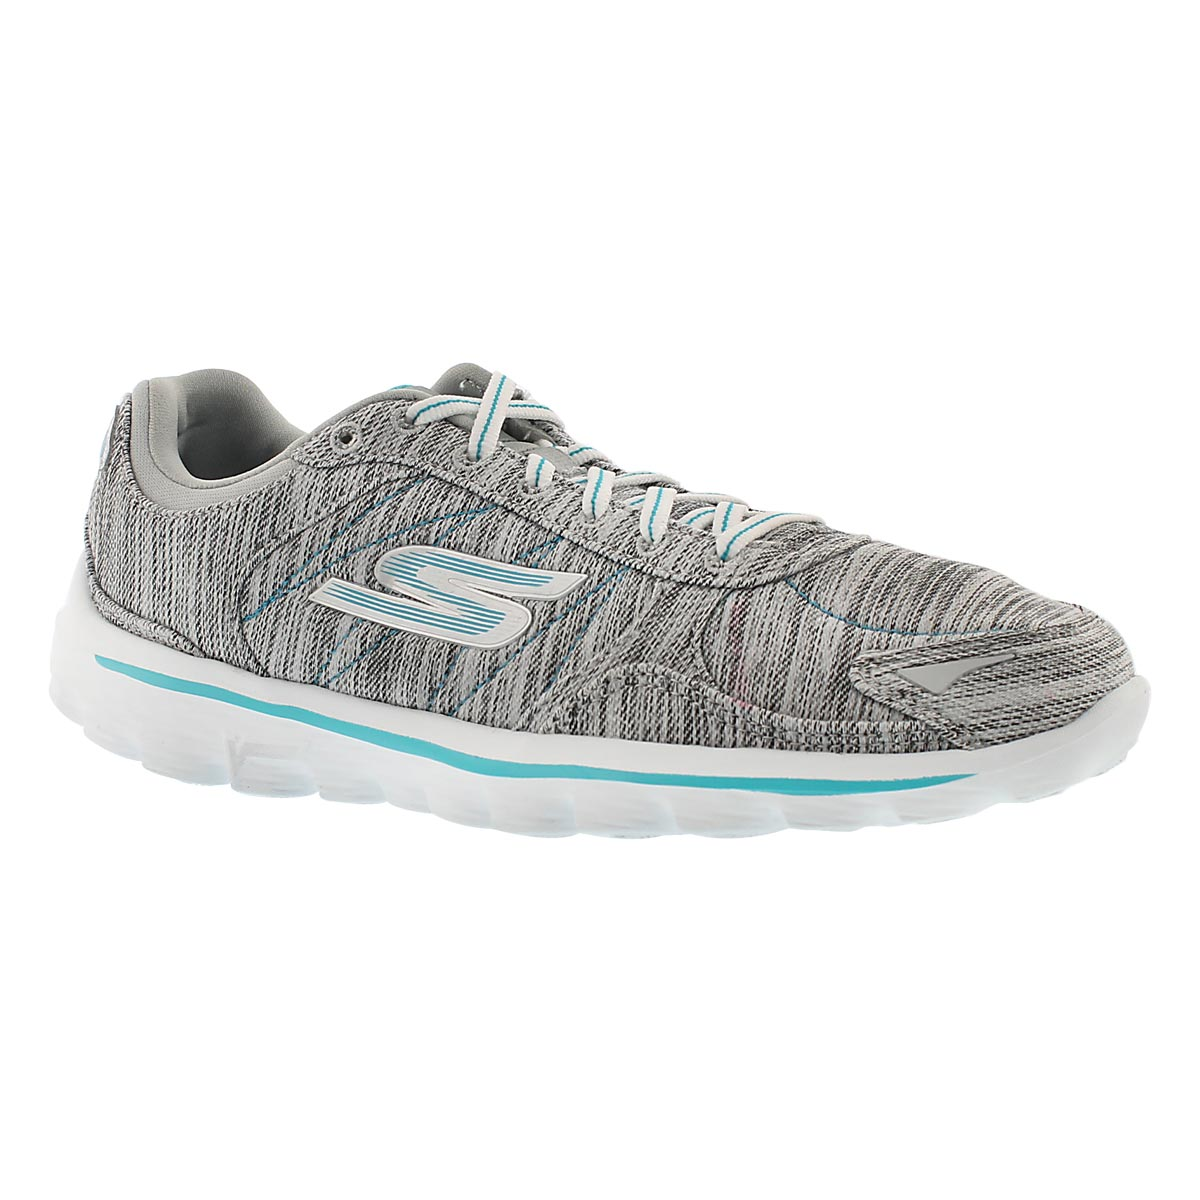 Lds GOwalk 2- Flash Linear gry sneaker